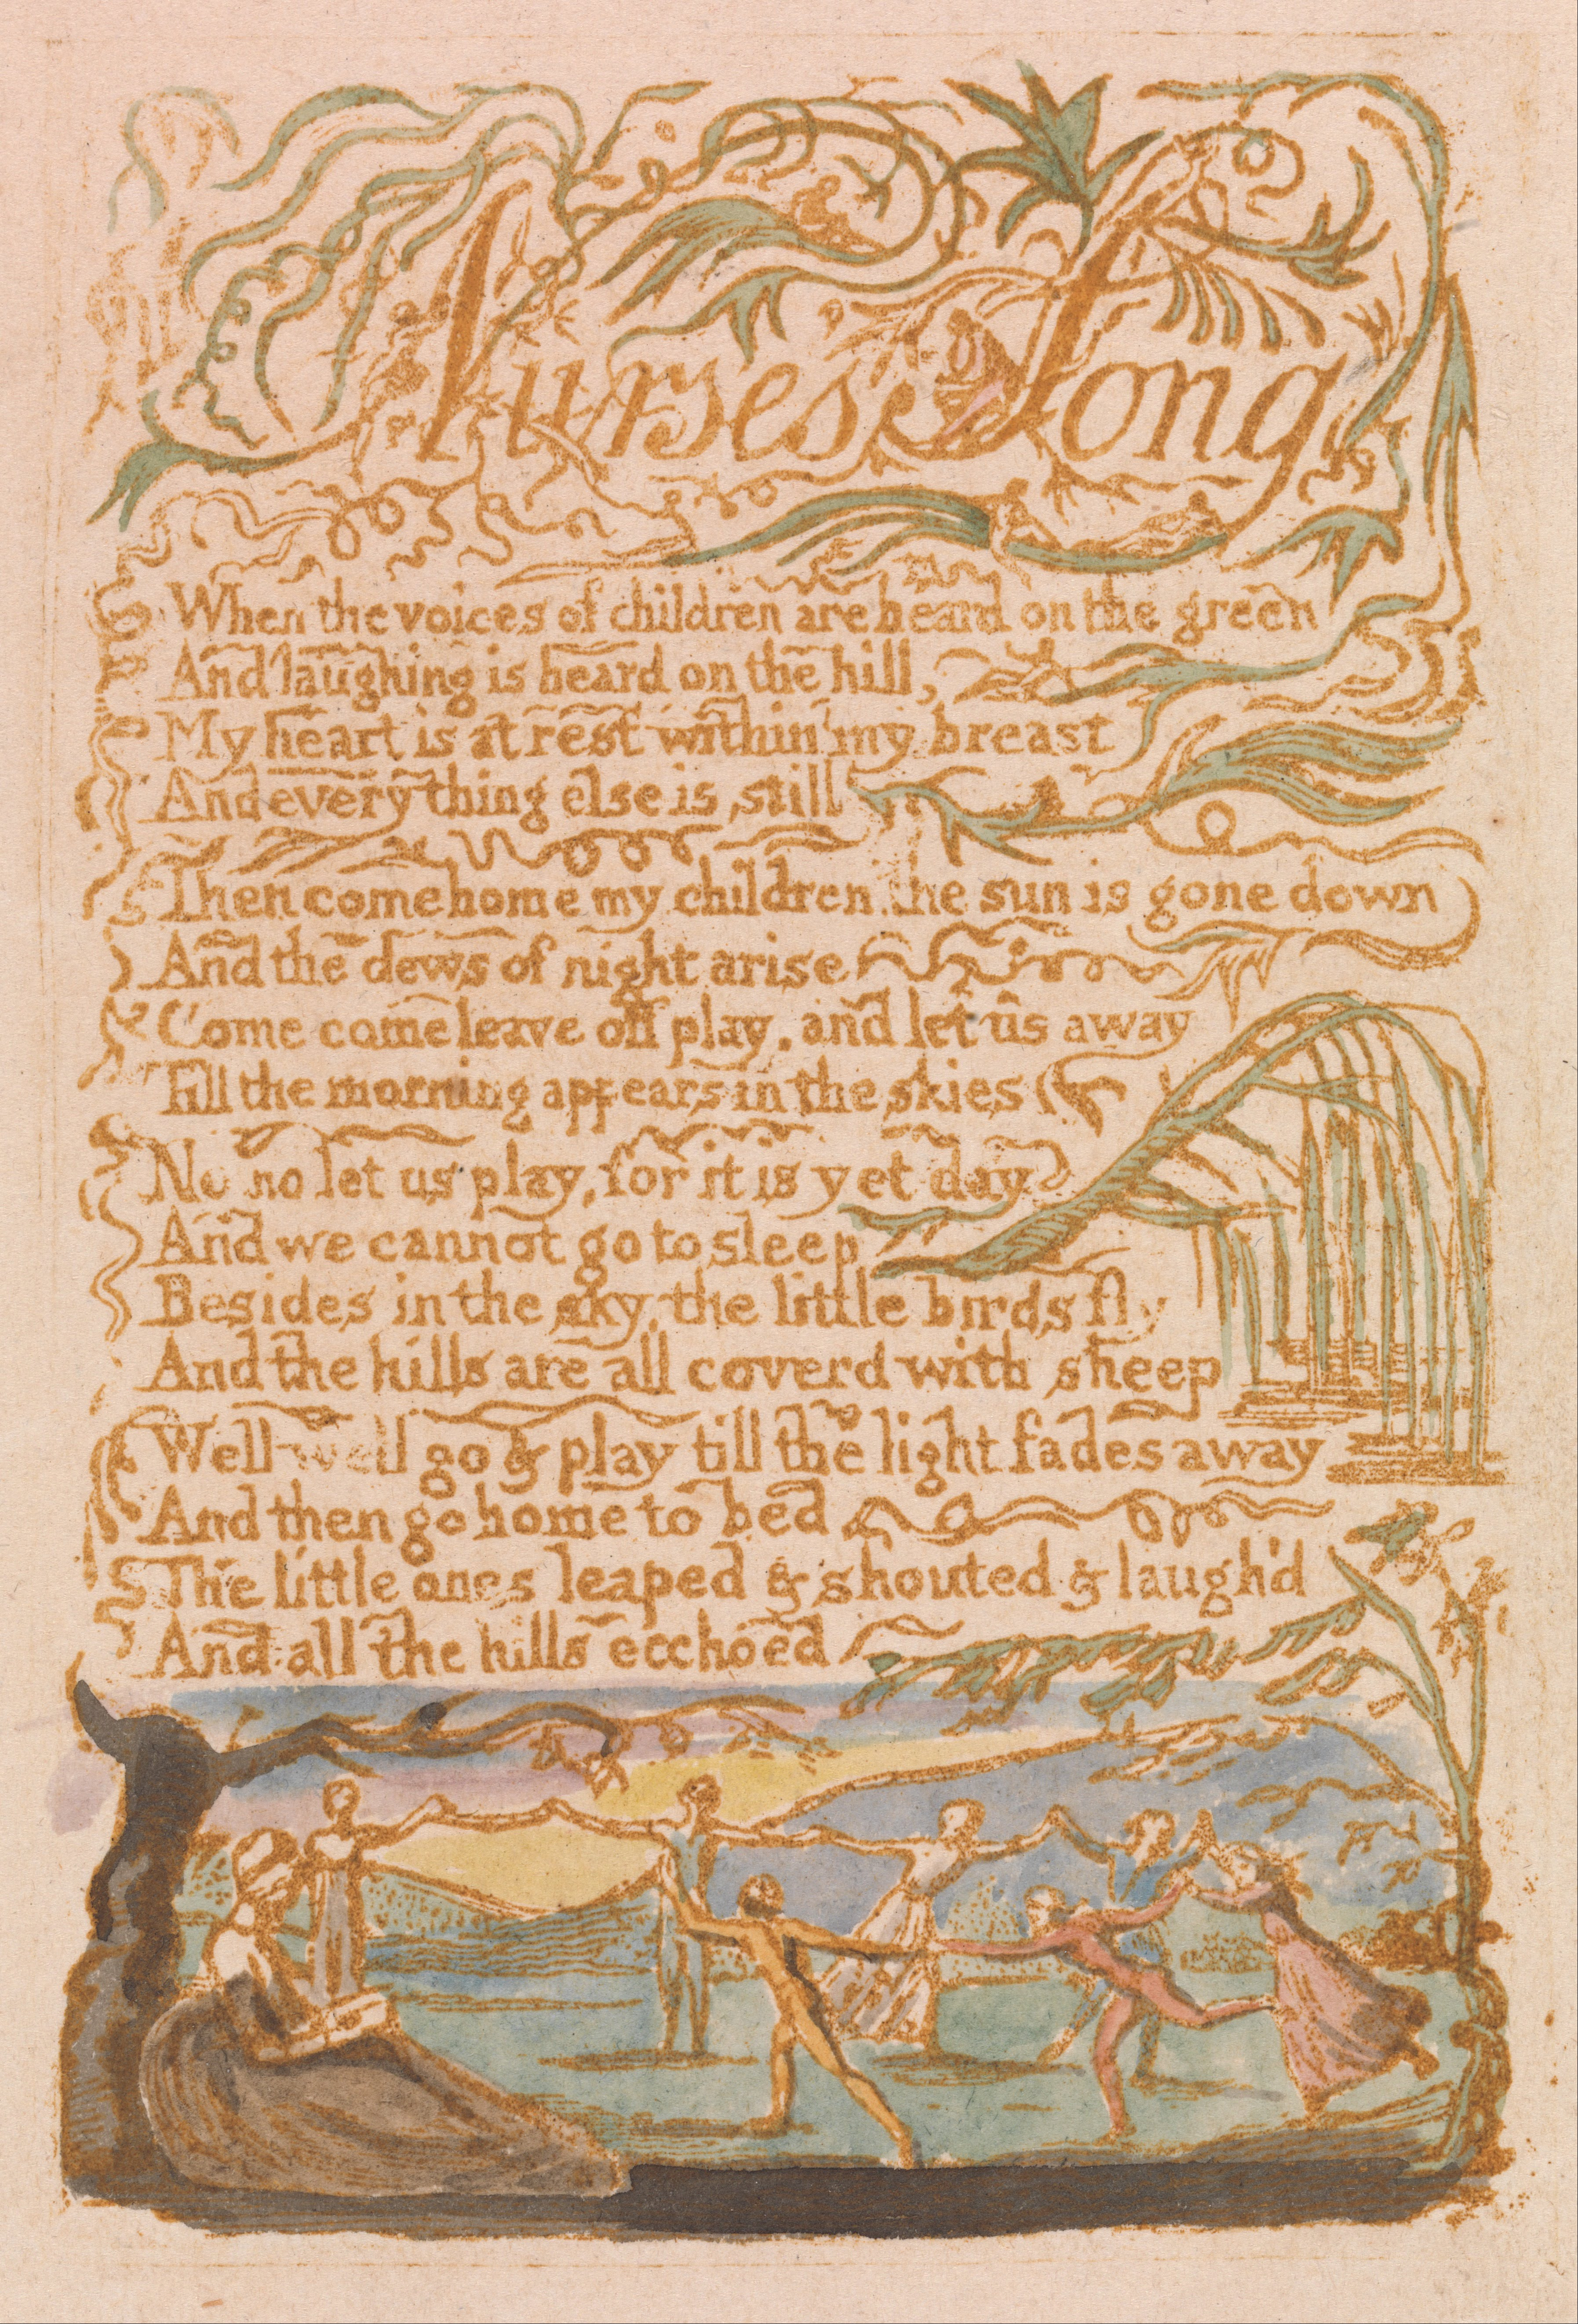 william blakes nurses song Songs of innocence and of experience [william blake] on amazoncom free shipping on qualifying offers this compact hardcover edition of william blake's classic songs of innocence and of experience is the perfect size for students and collectors of classic poetry.